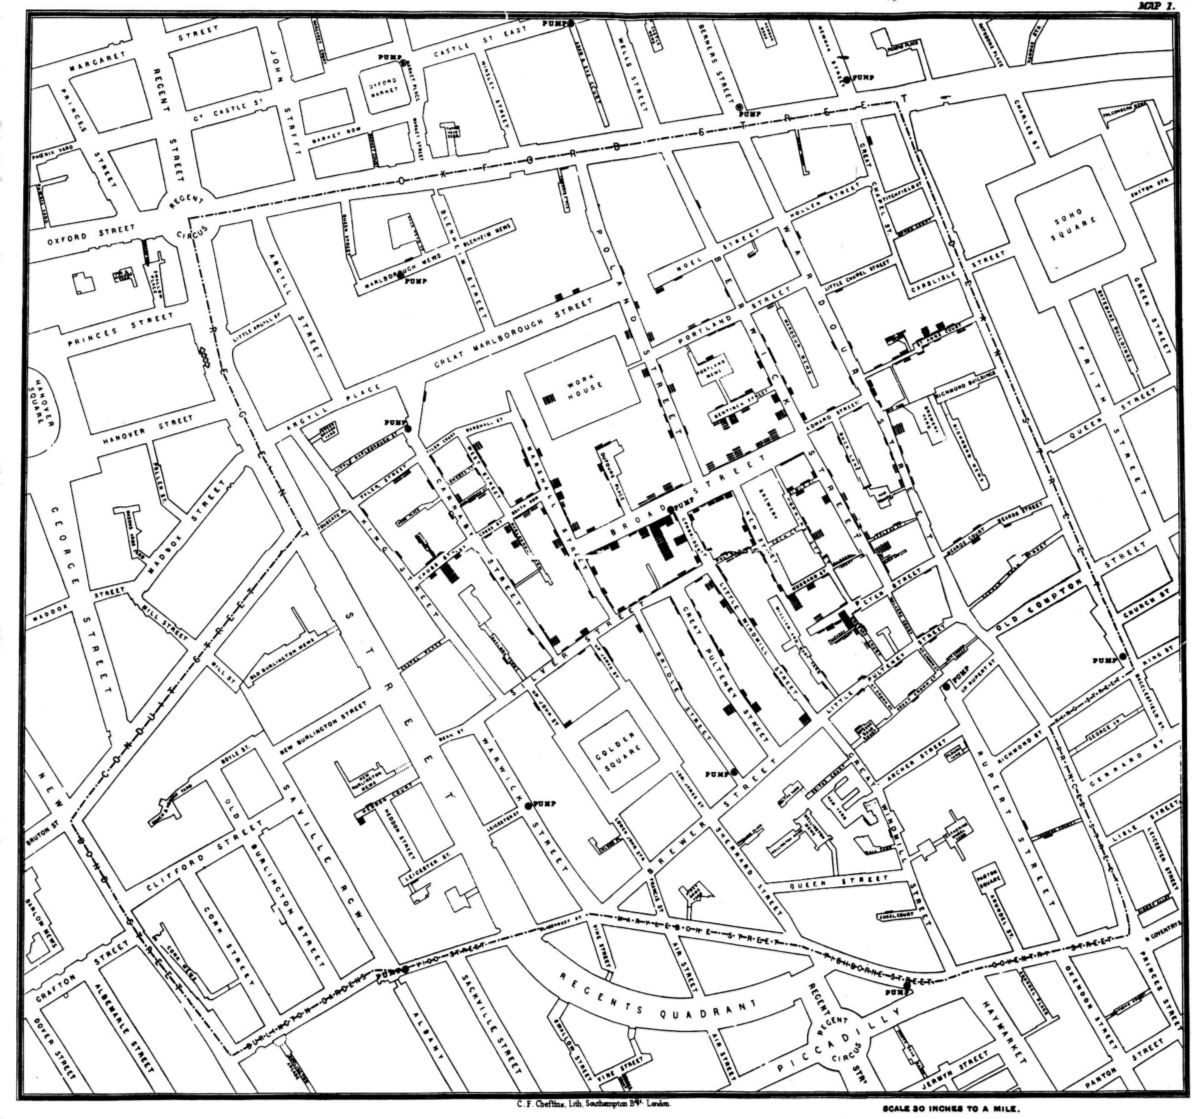 Fig. 9. John Snow's spot map of the Broad street Cholera outbreak 1854